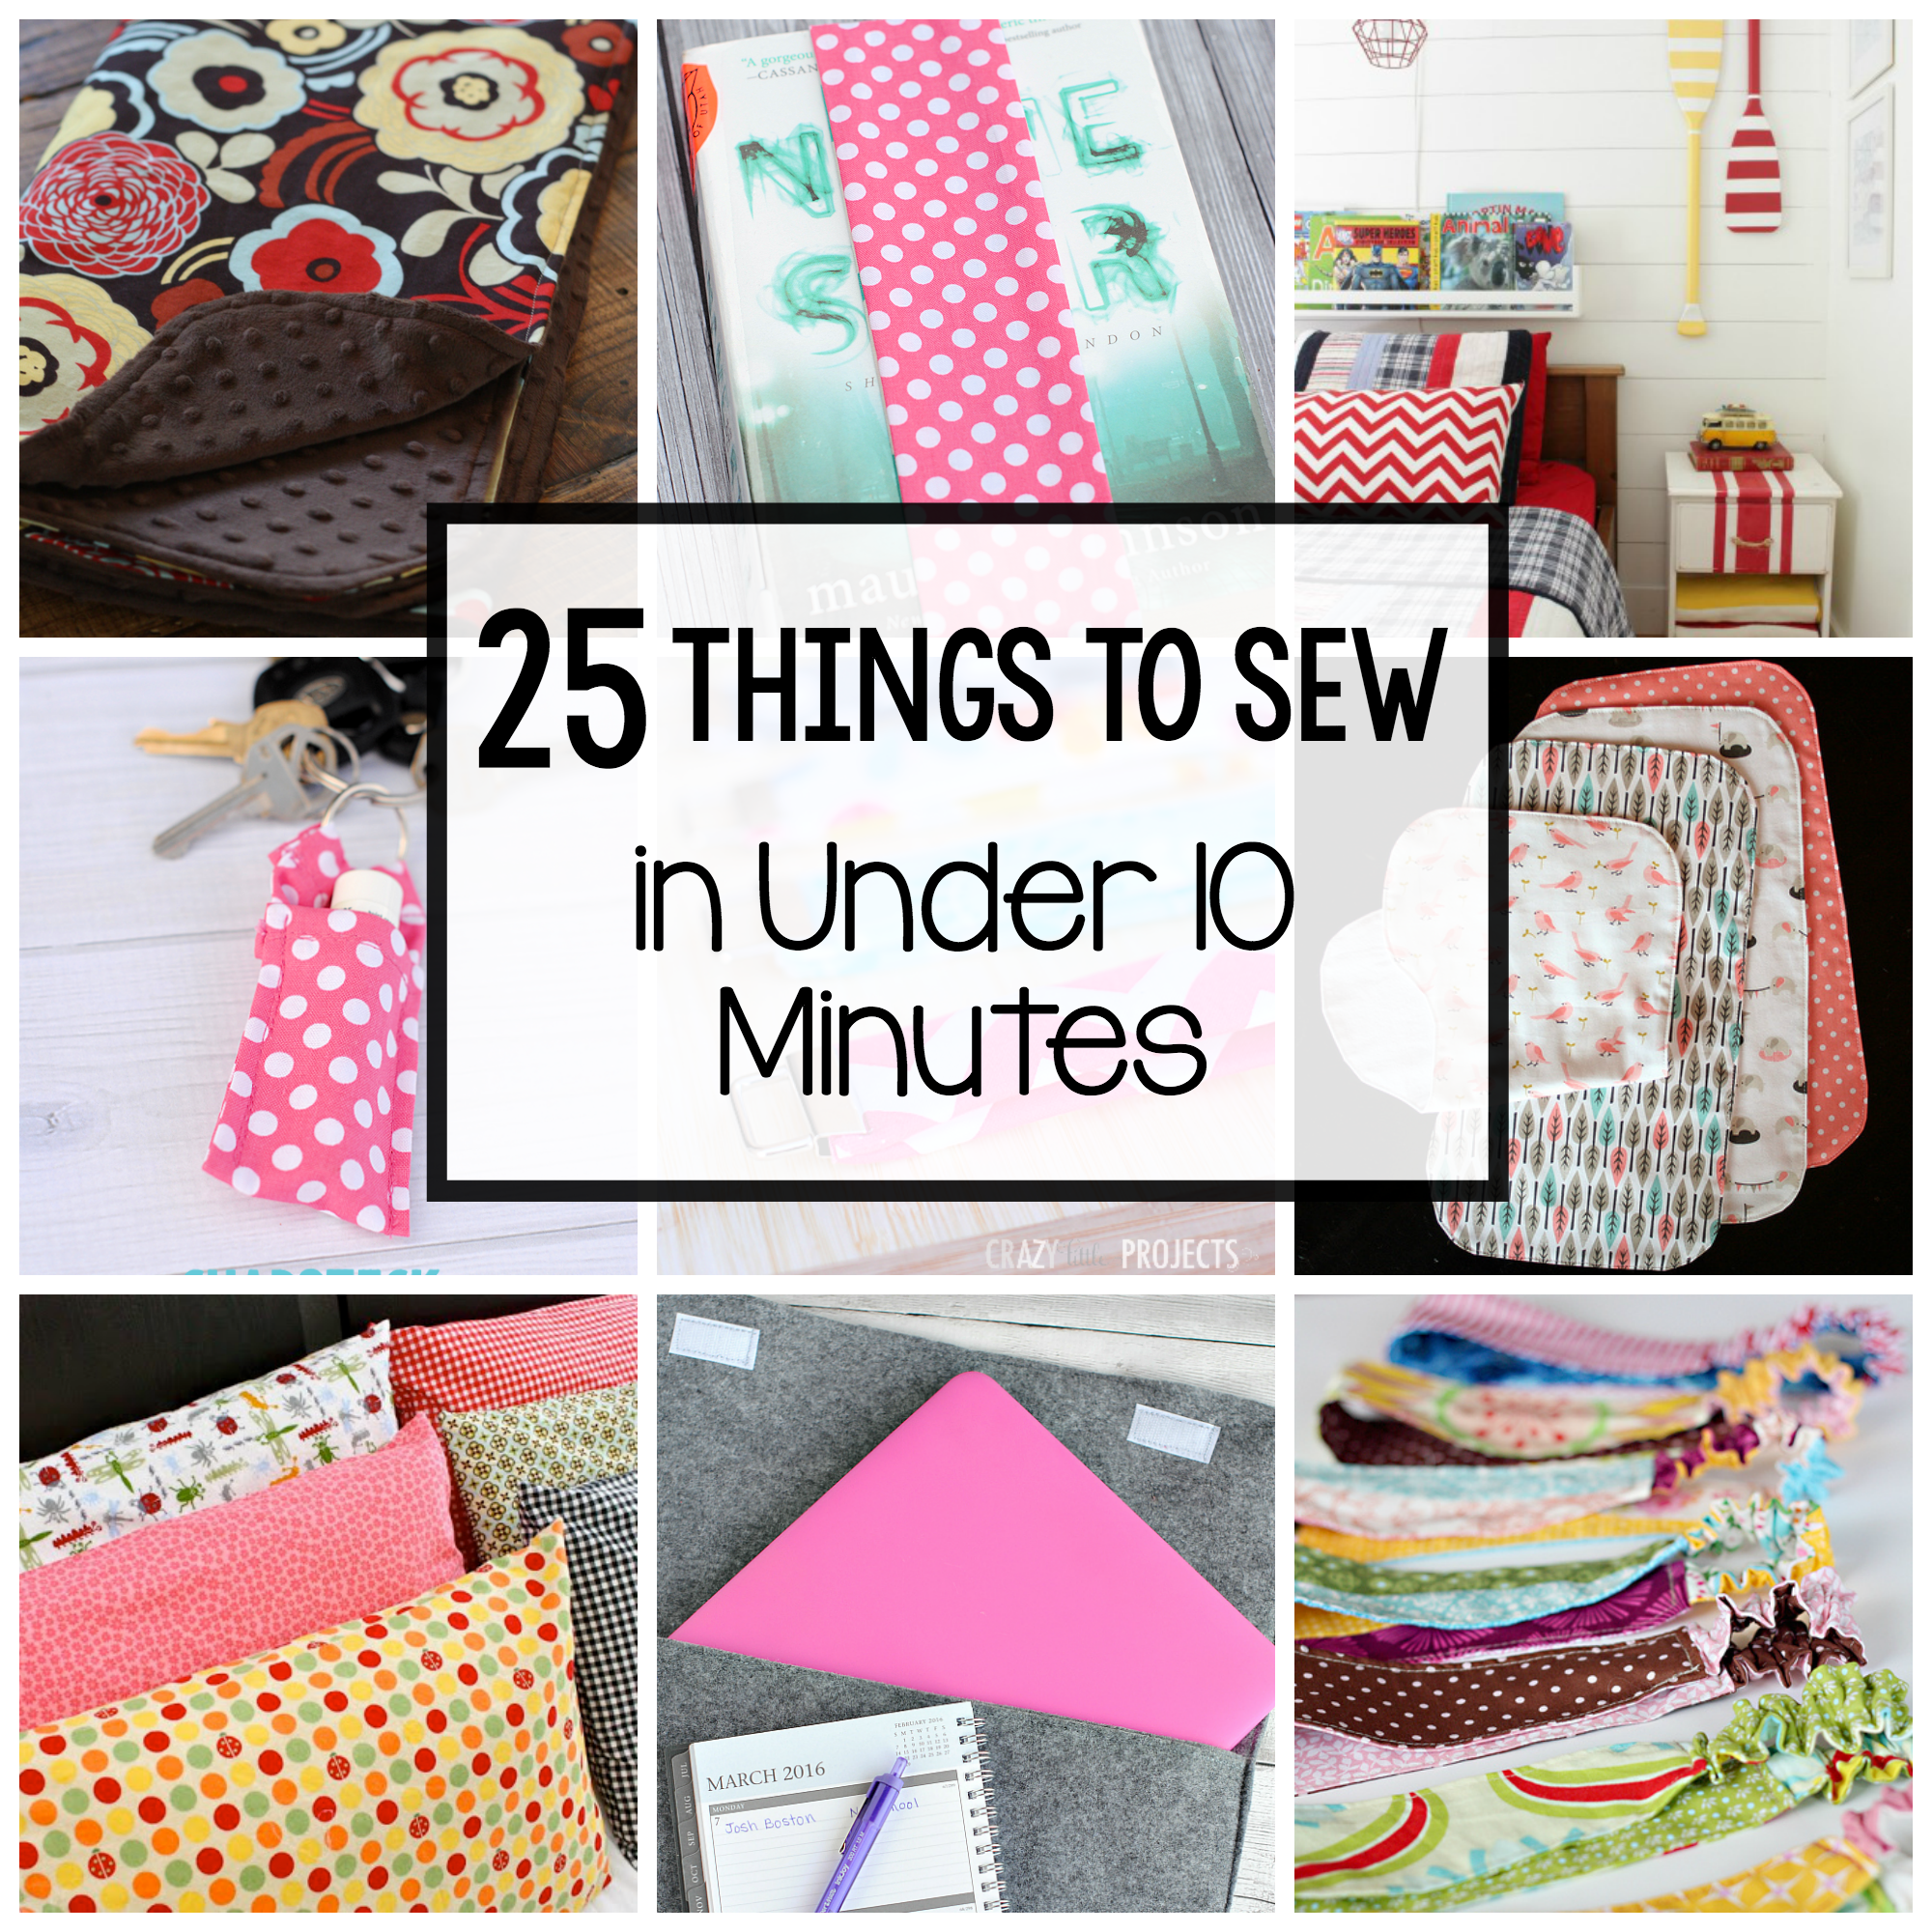 Easy Sewing Projects-25 Things to Sew in Under 10 Minutes